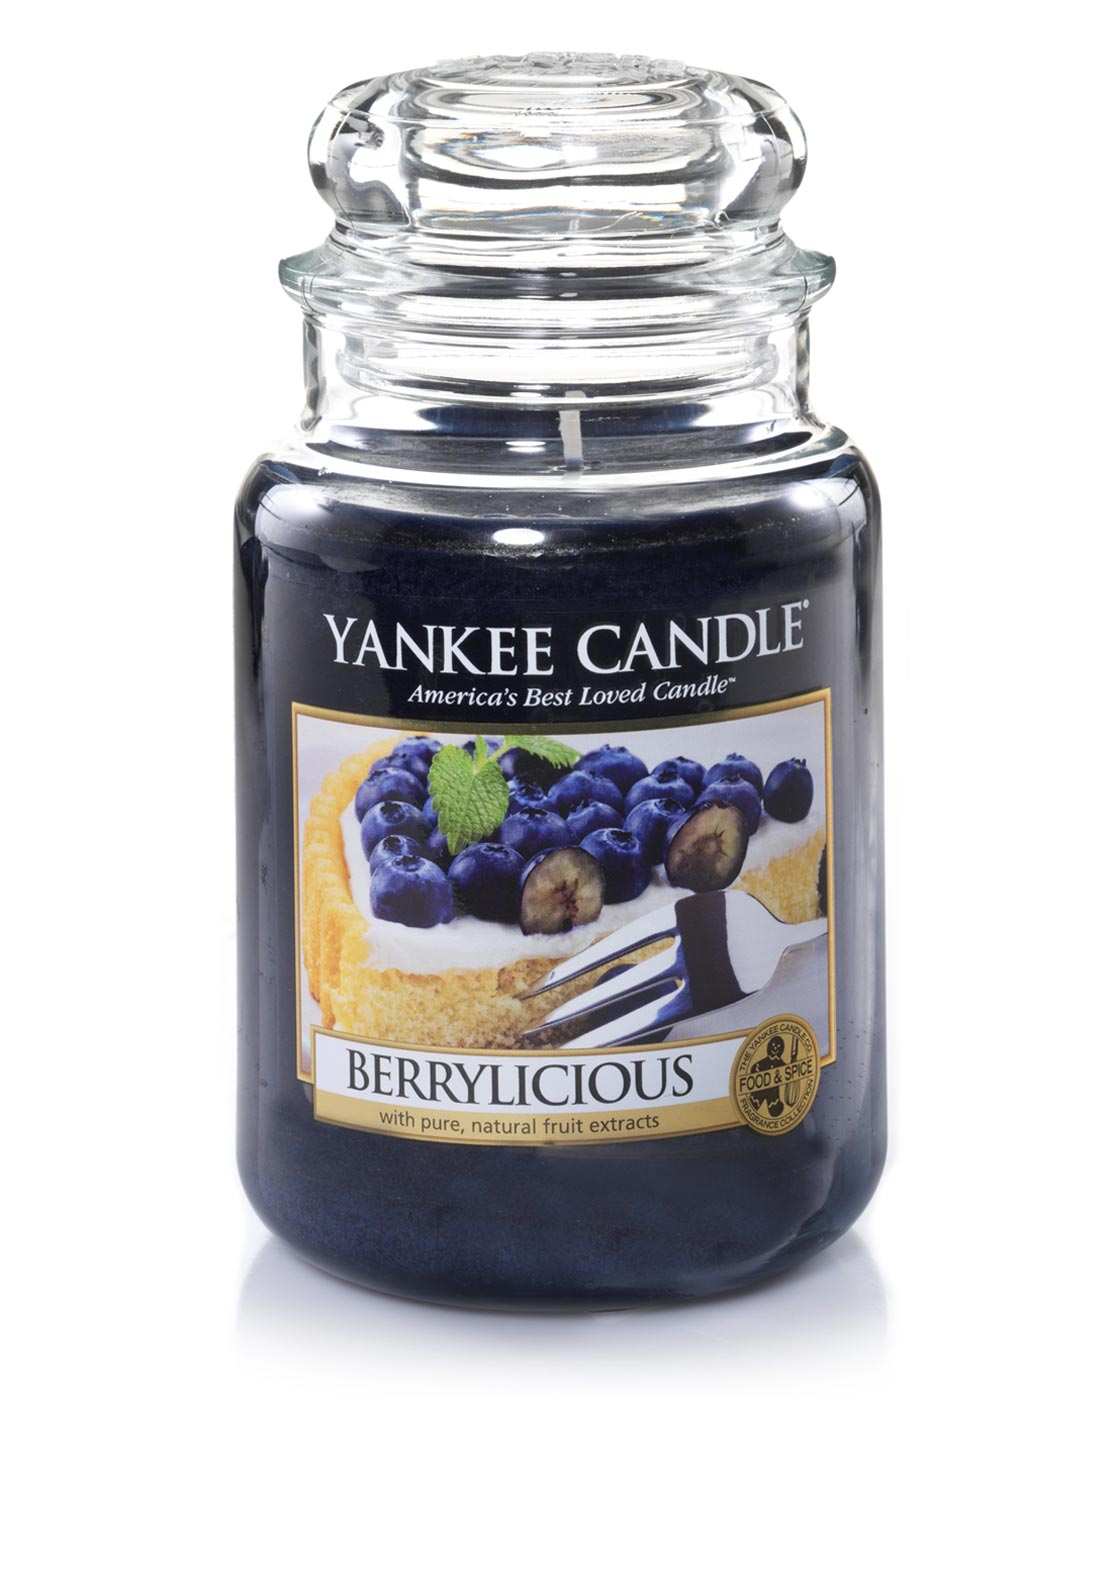 Yankee Candle Large Classic Jar, Berrylicious